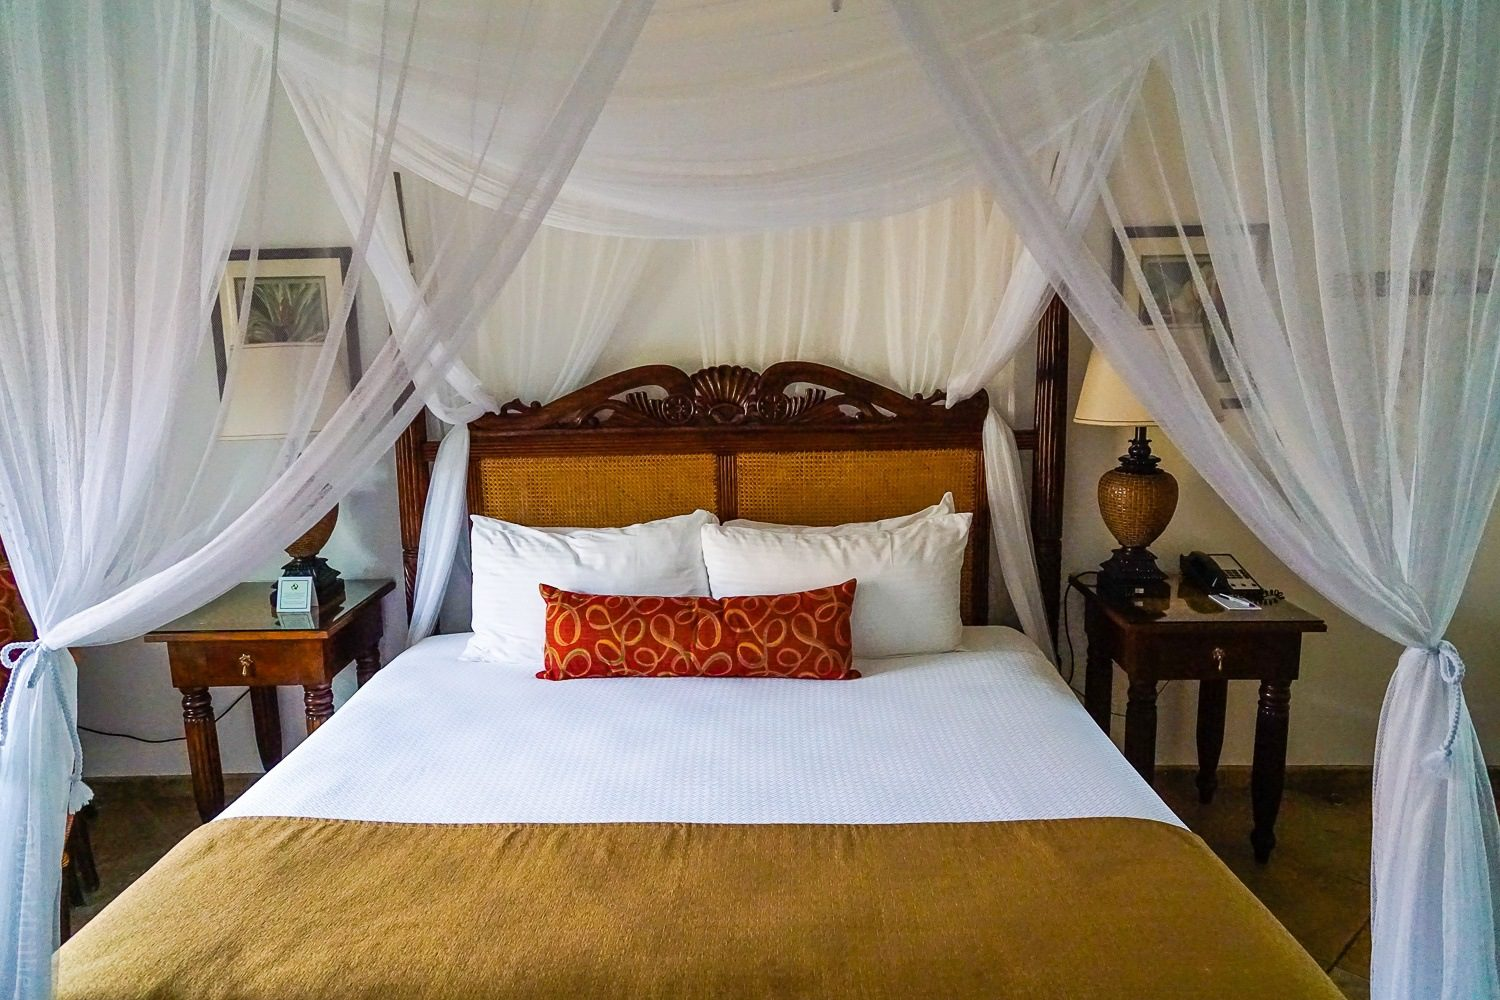 There wasn't a single mosquito in my room, but I appreciated the canopy drape on the bed!